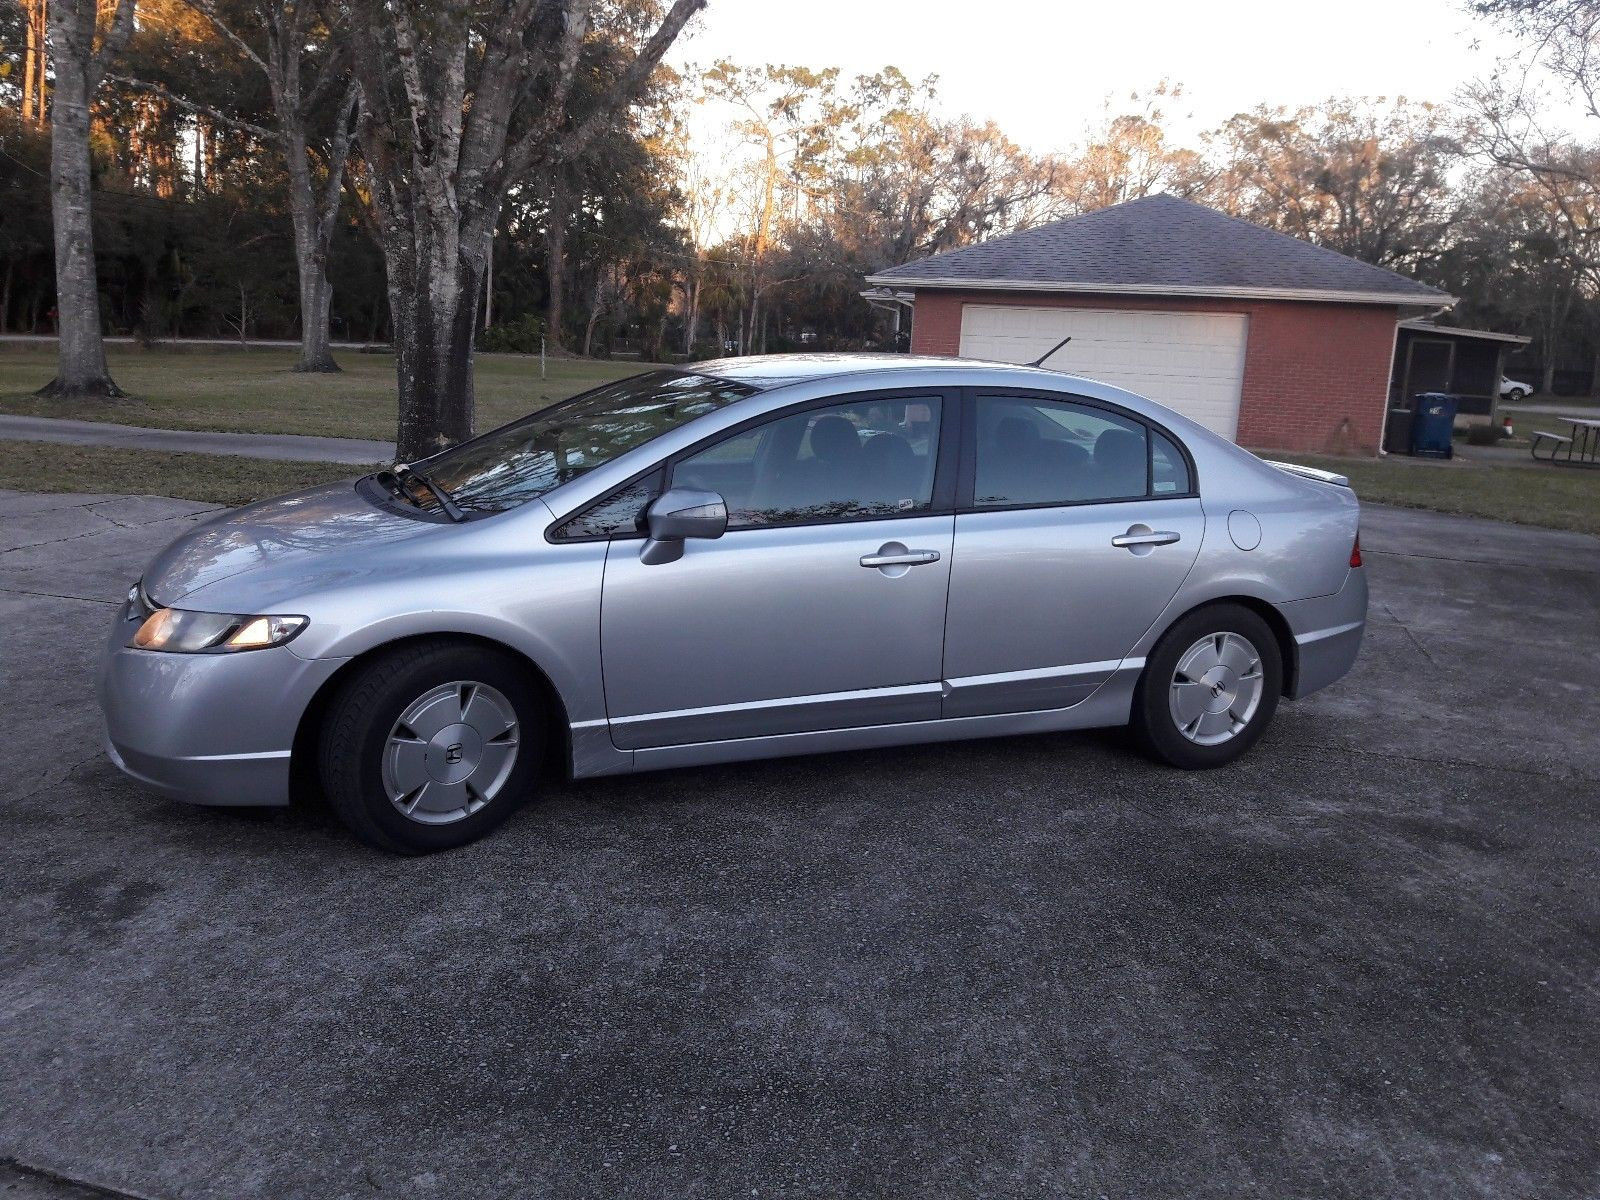 Amazing 2008 Honda Civic Silver Hybrid Sedan 4 Door For 2017 2018